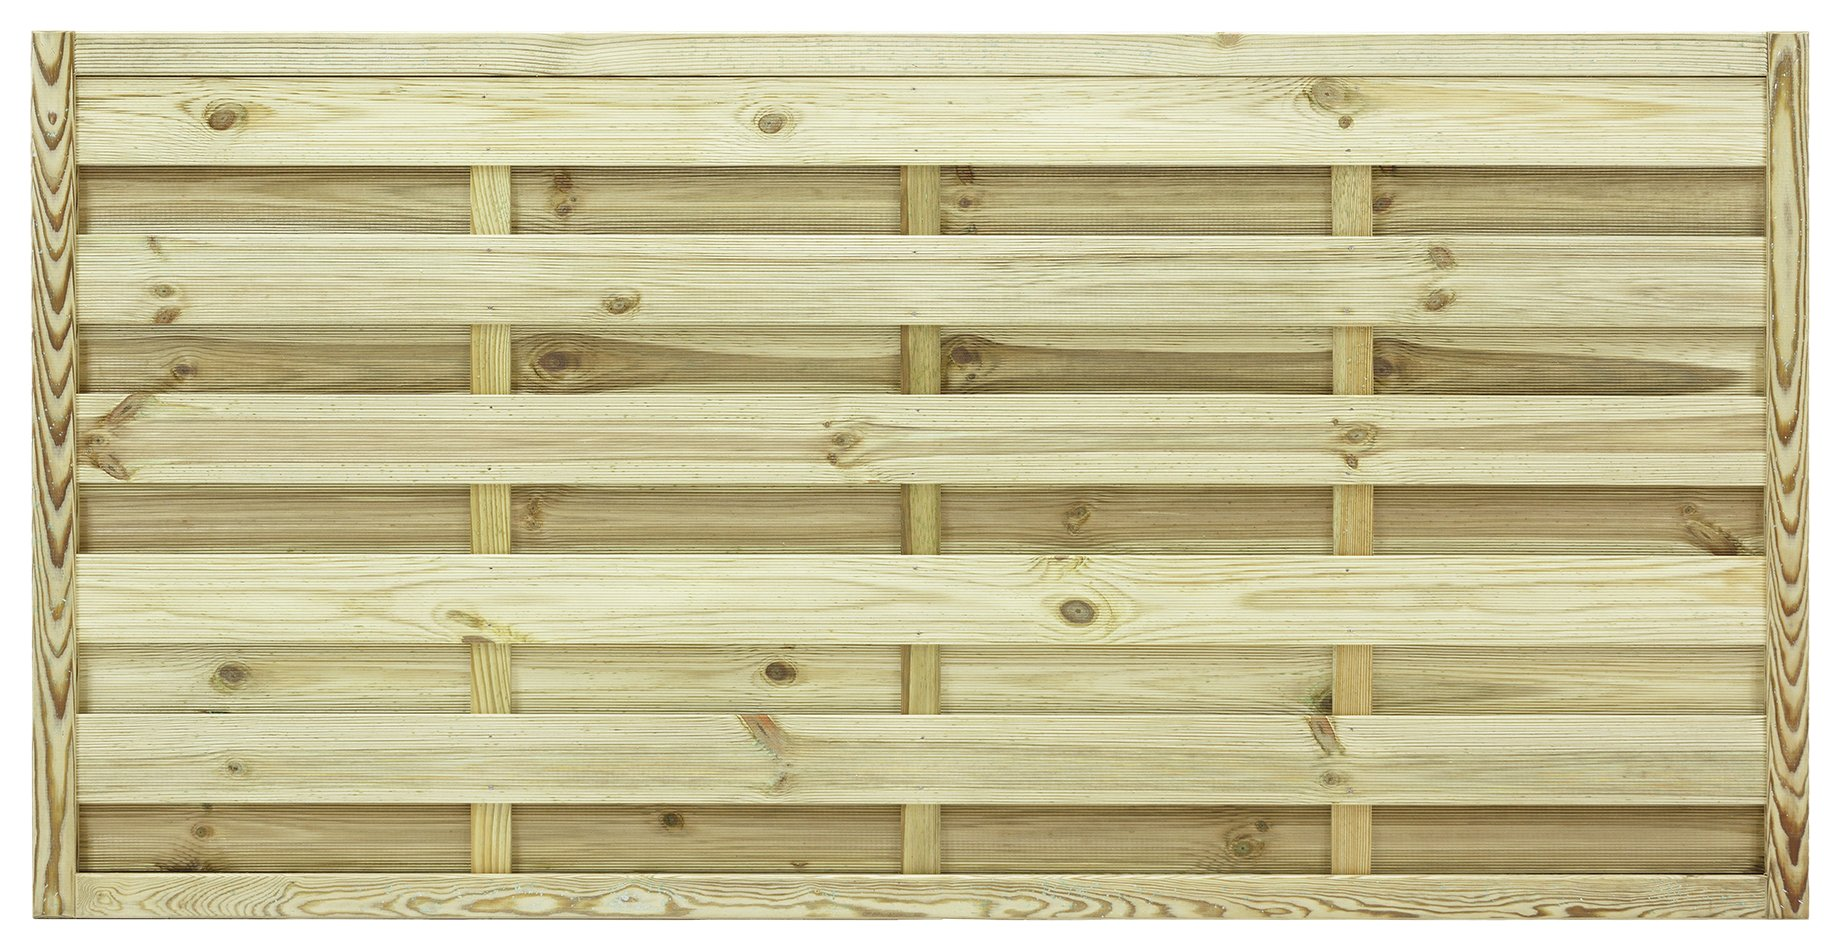 Image of Grange 0.9m St Espirit Square Fence Panel - Pack of 5.